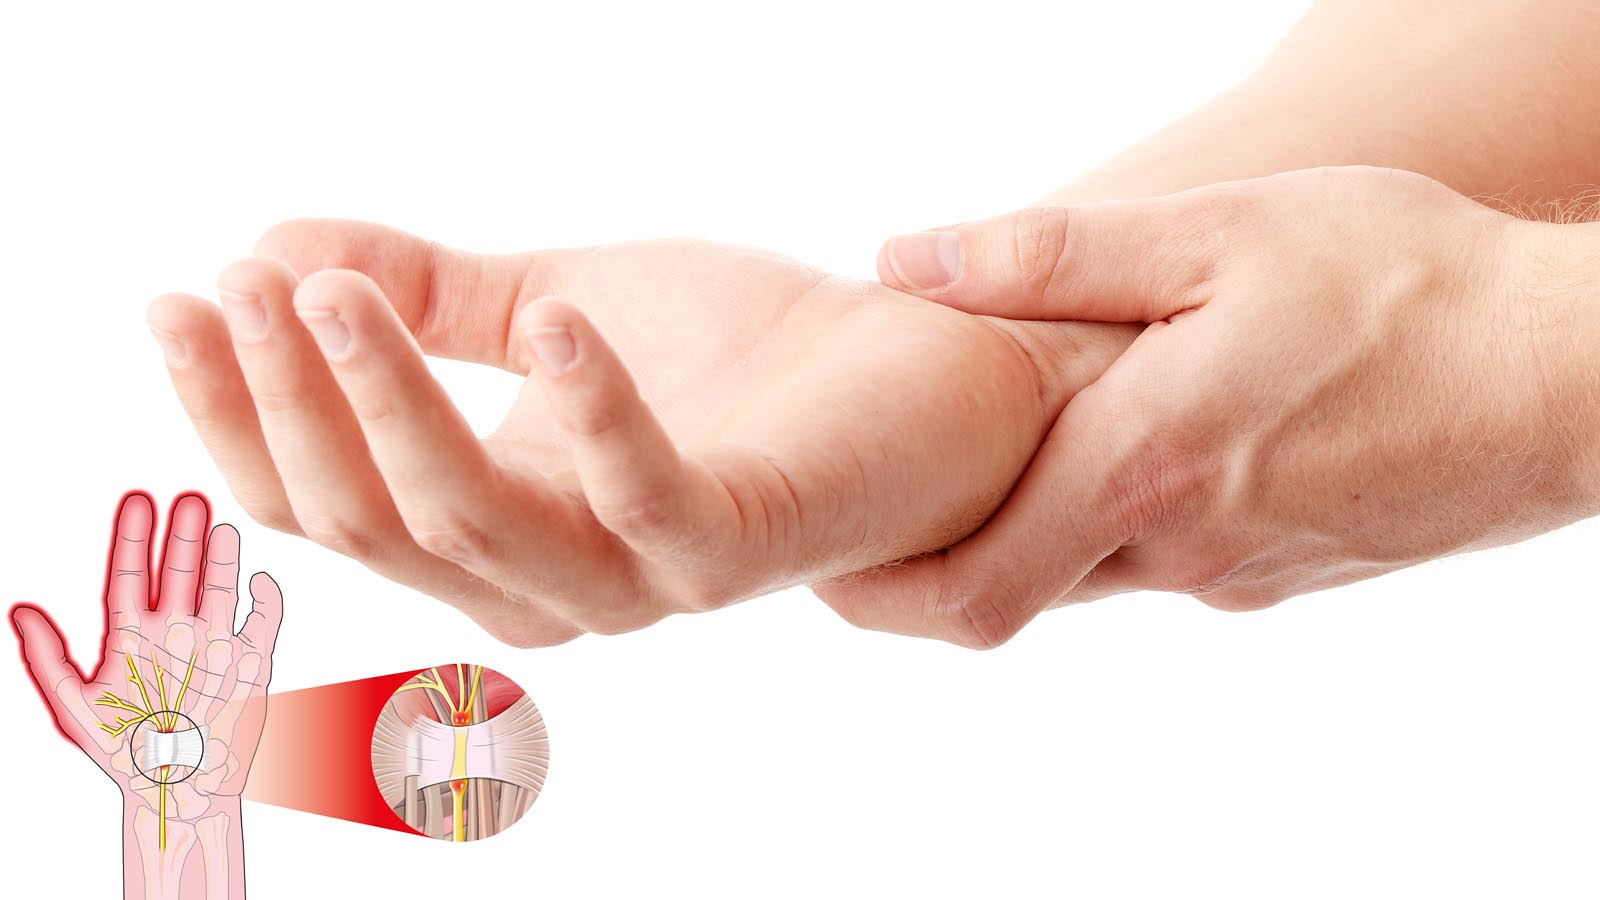 Best Physiotherapy clinic in Egypt for Wrist and Hand treatment